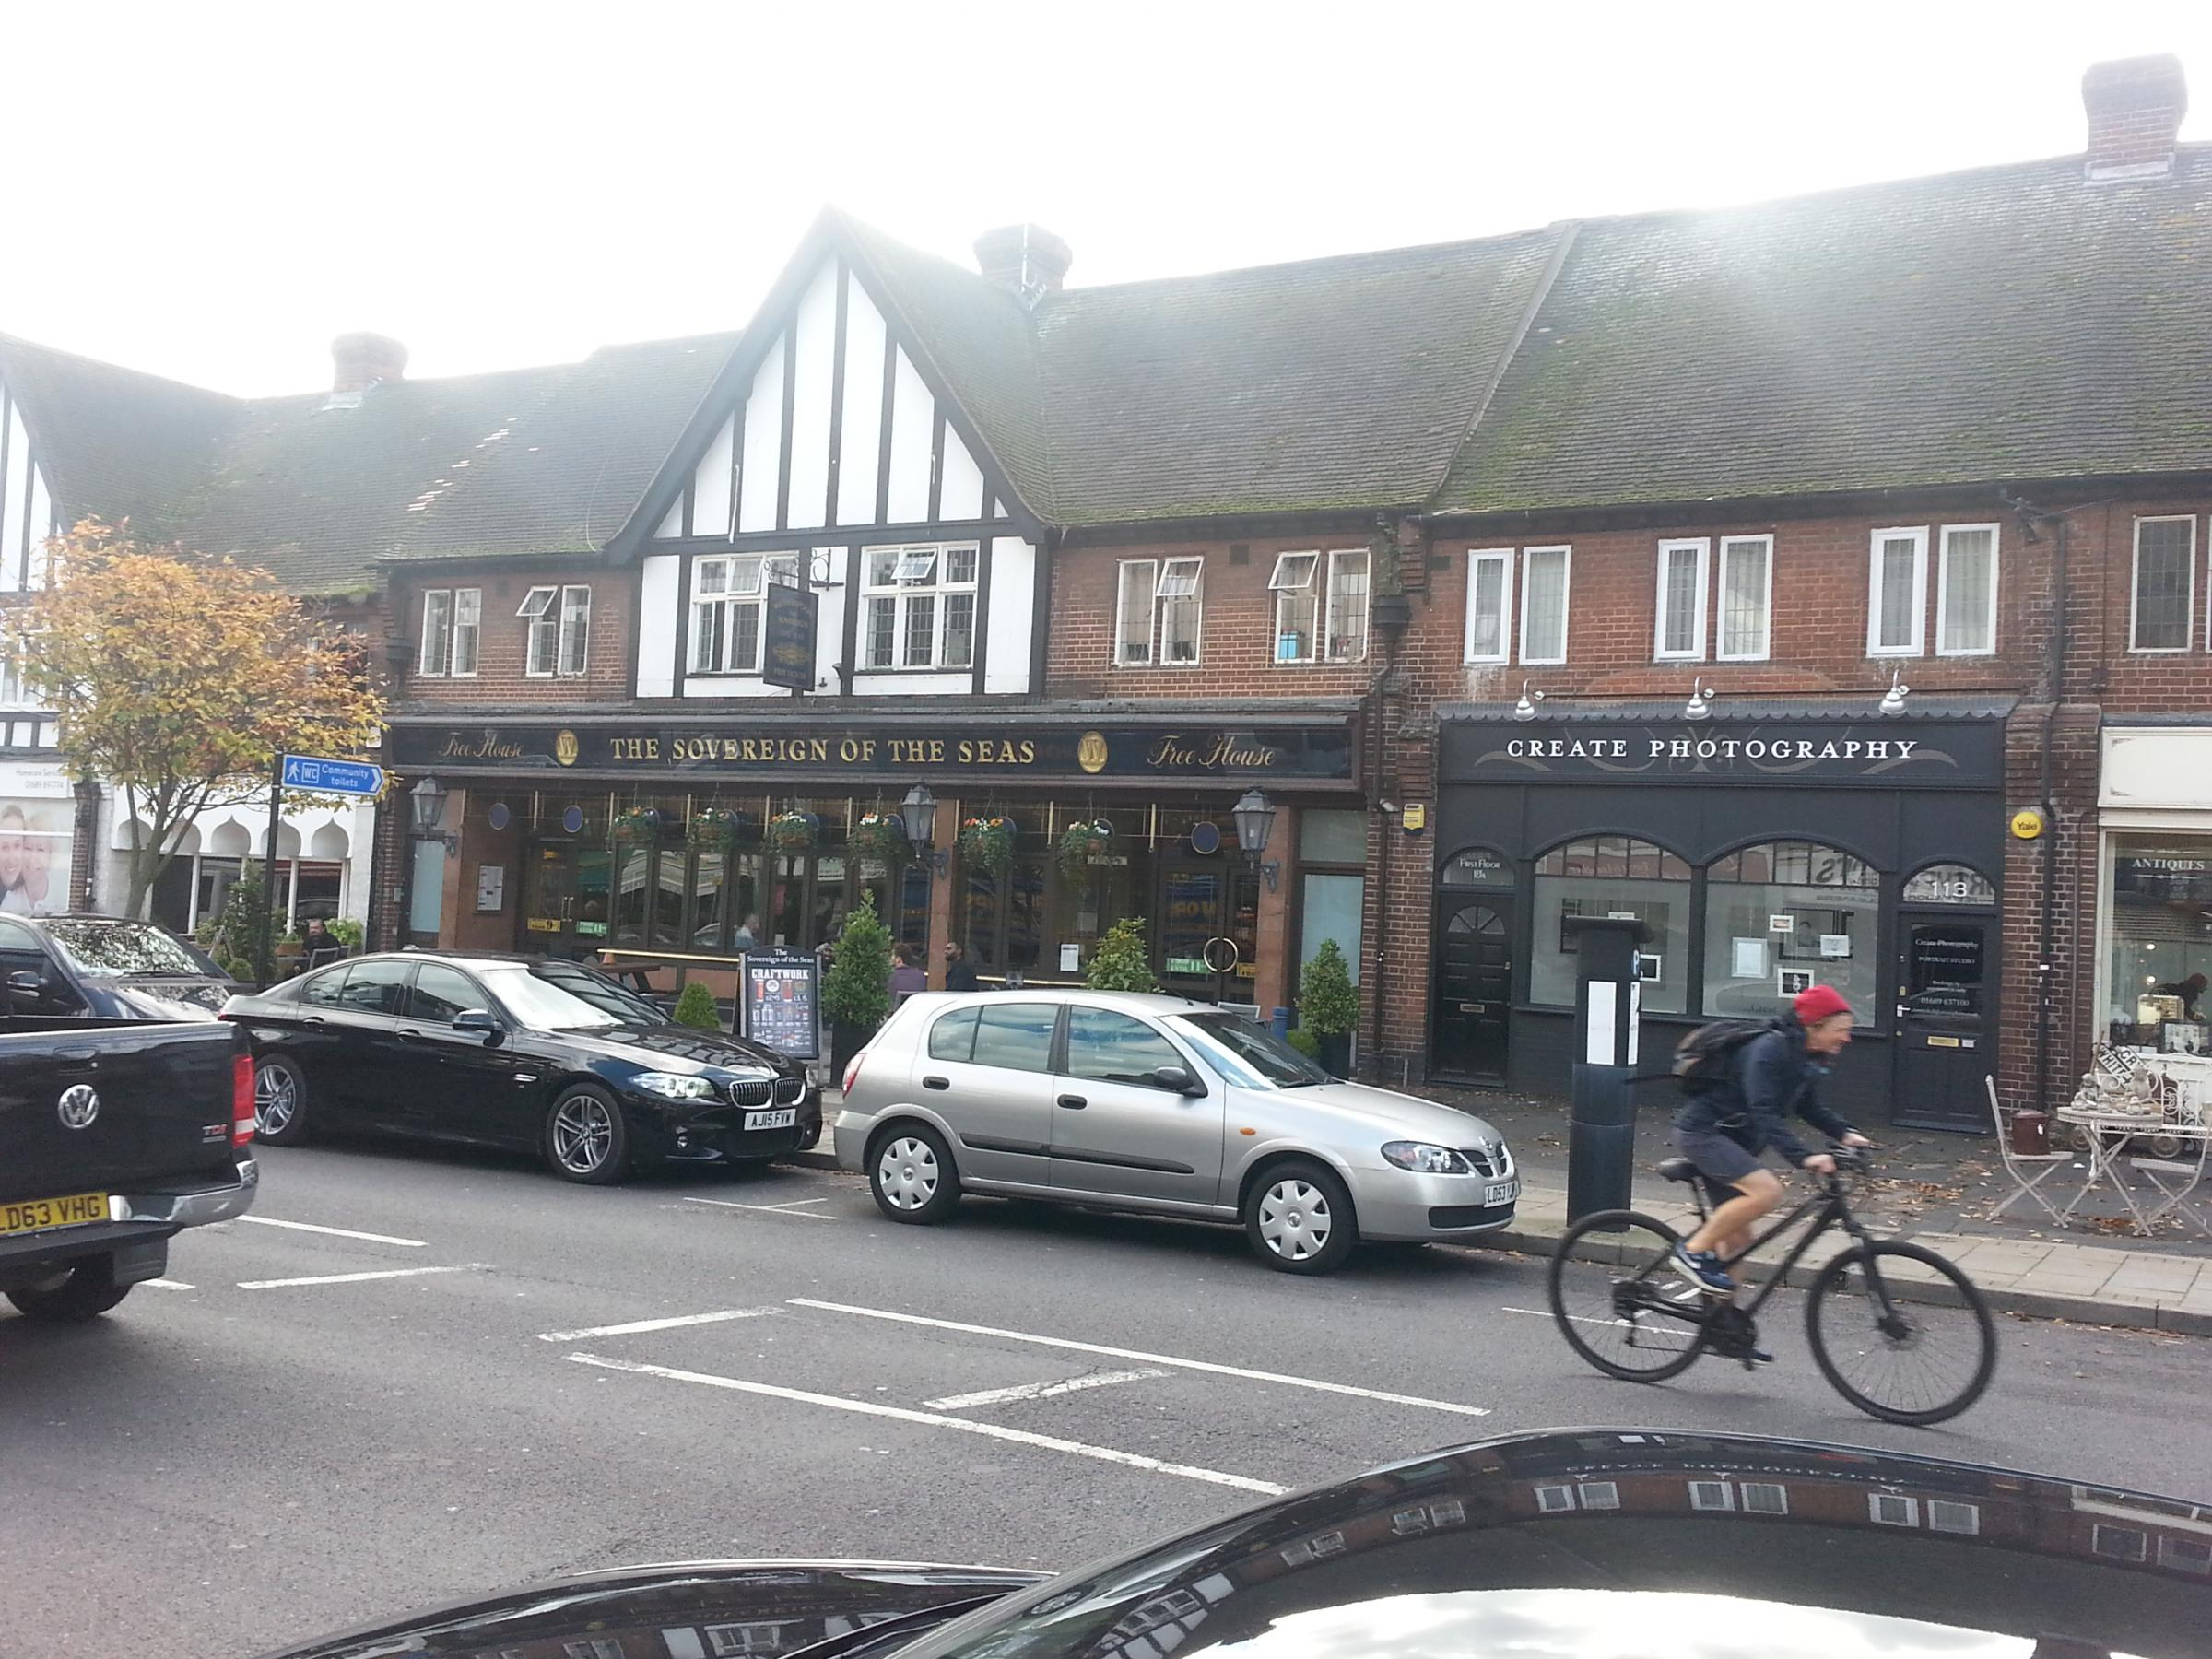 PubSpy bids farewell to Petts Wood and a trusted local